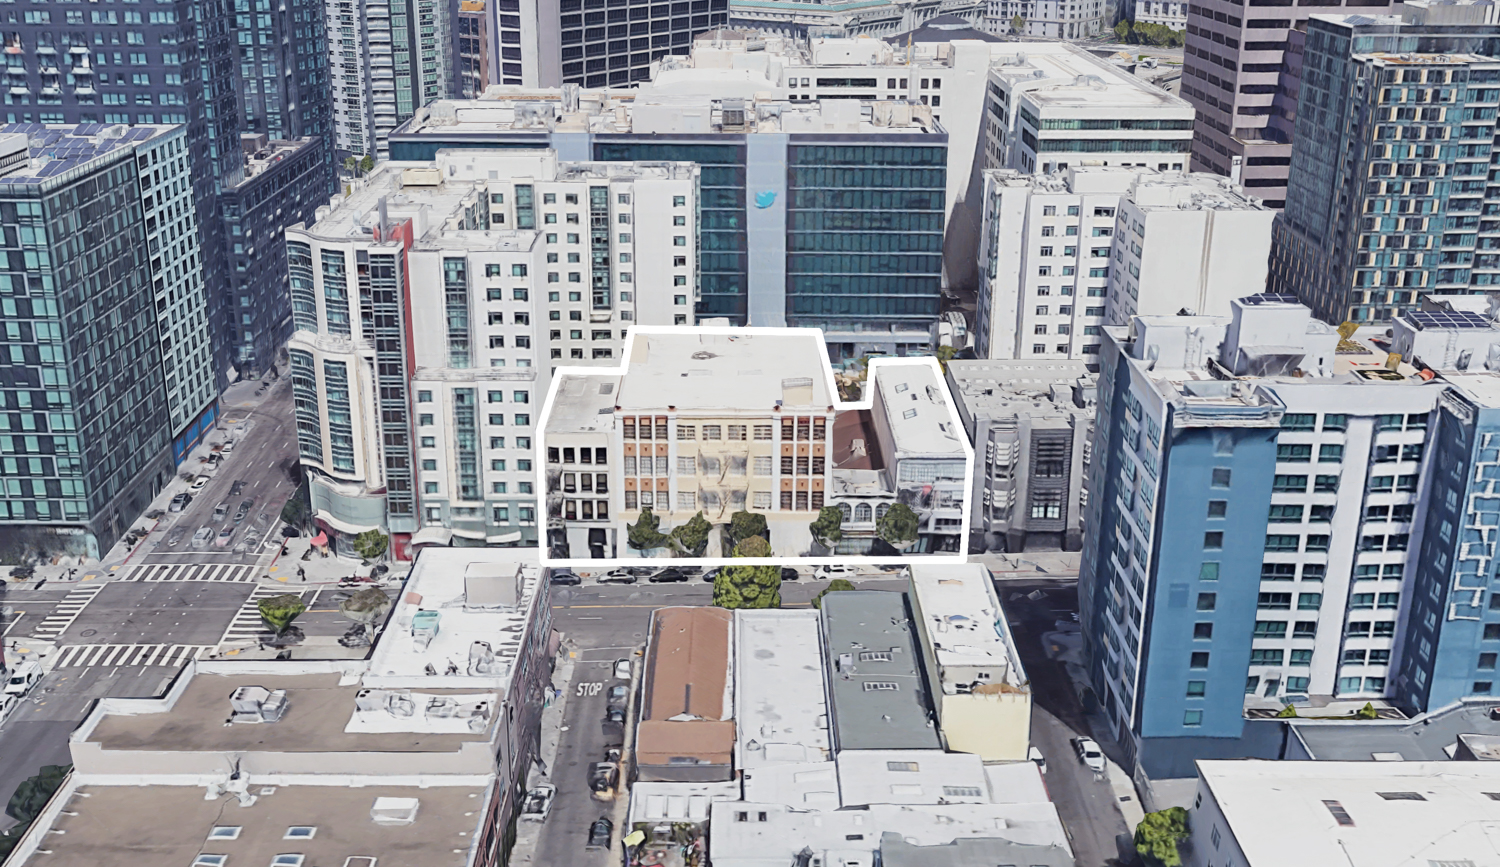 1338-1370 Mission Street with neighboring high-density development, image via Google Satellite